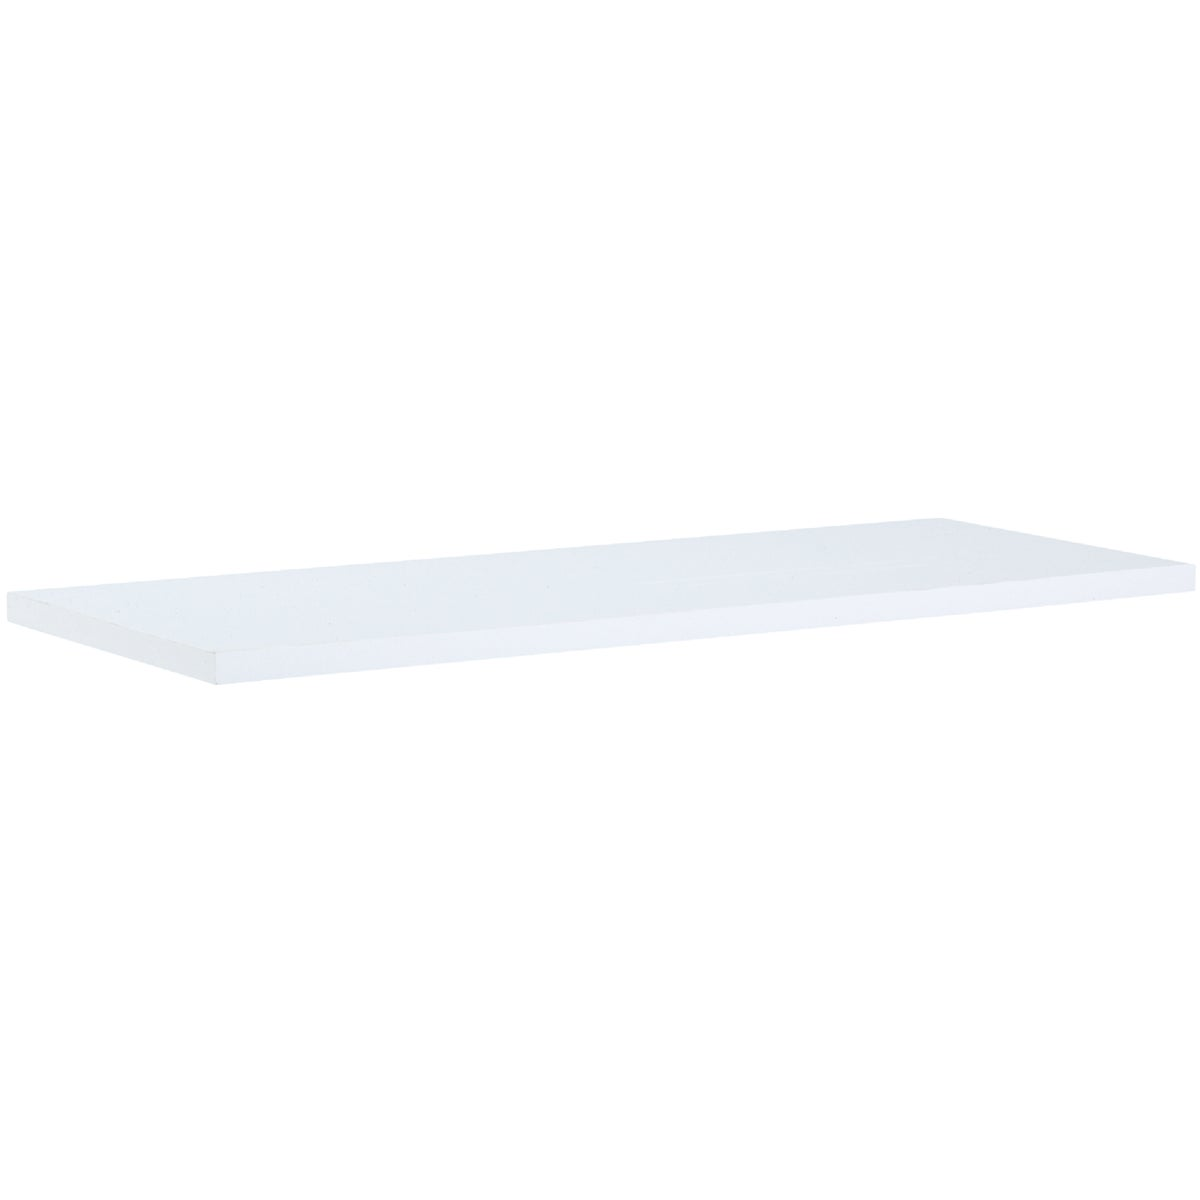 10X24 WHITE SHELF - 1980WH by Knape & Vogt Mfg Co